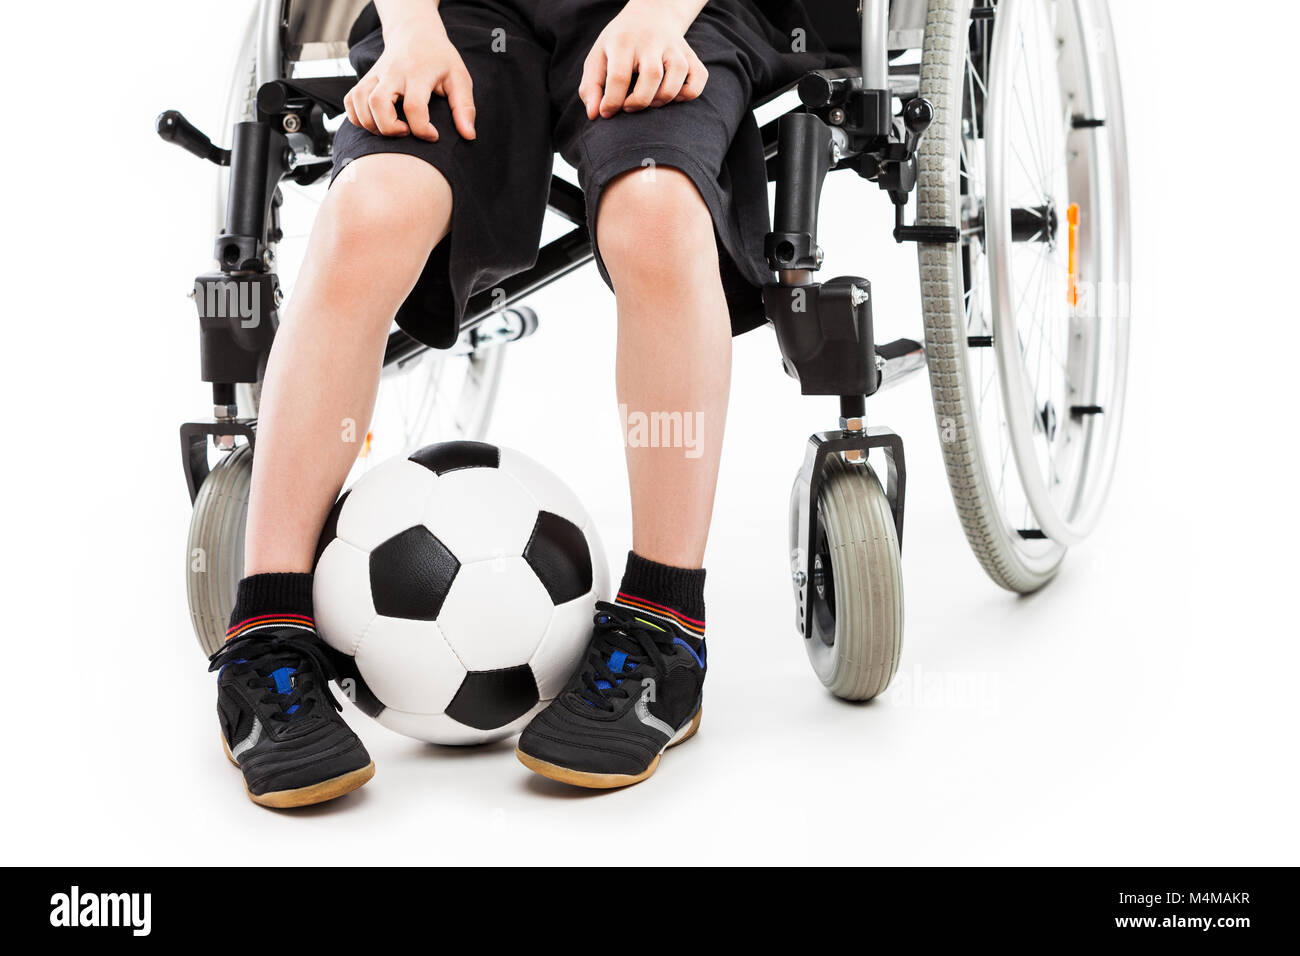 Disabled child boy sitting on wheelchair holding soccer ball - Stock Image